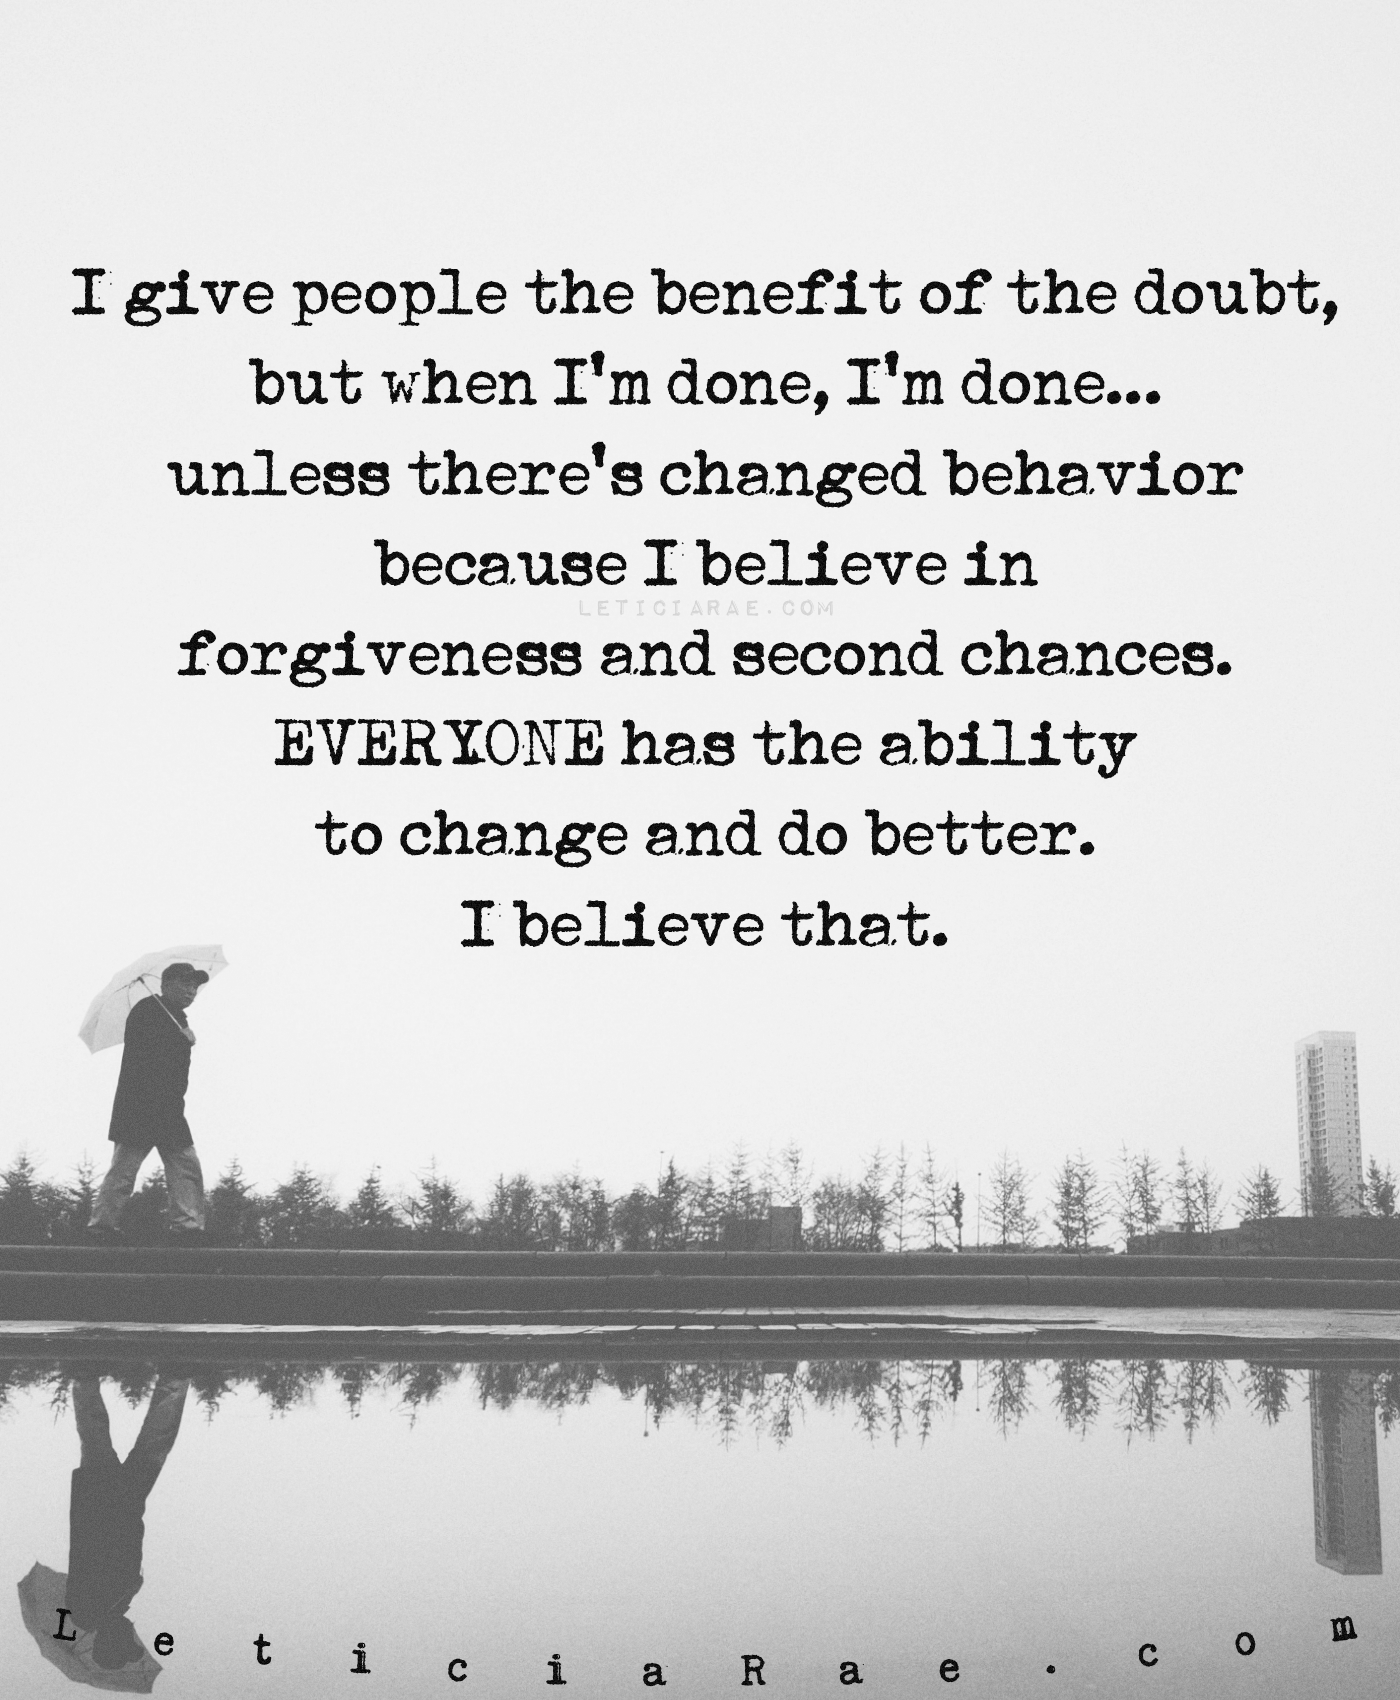 Finding The Silver Lining Doubt Quotes Relationship Forgiveness Quotes Behavior Quotes